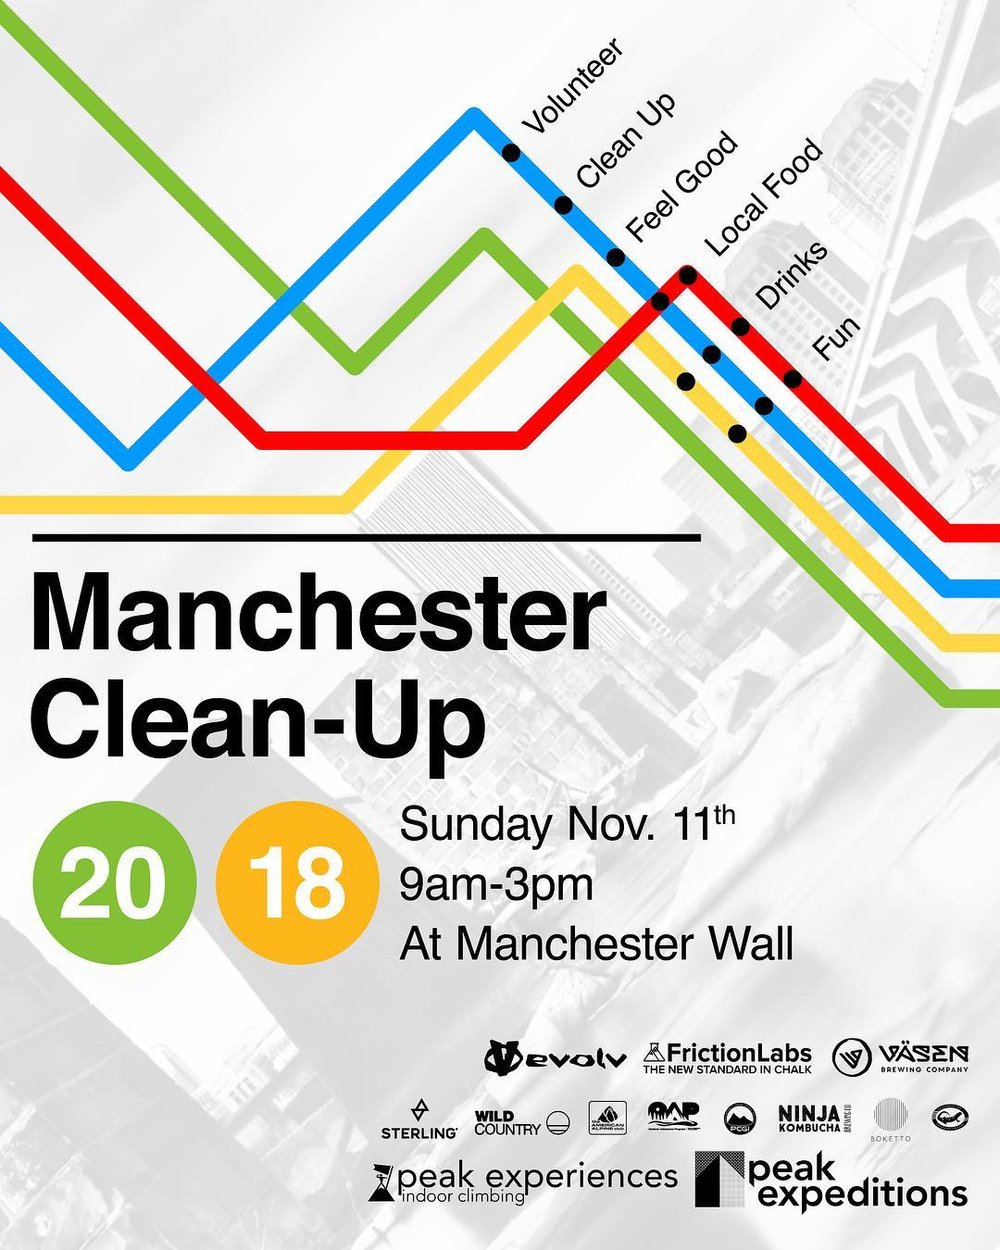 manchester-clean-up-11-11.jpg